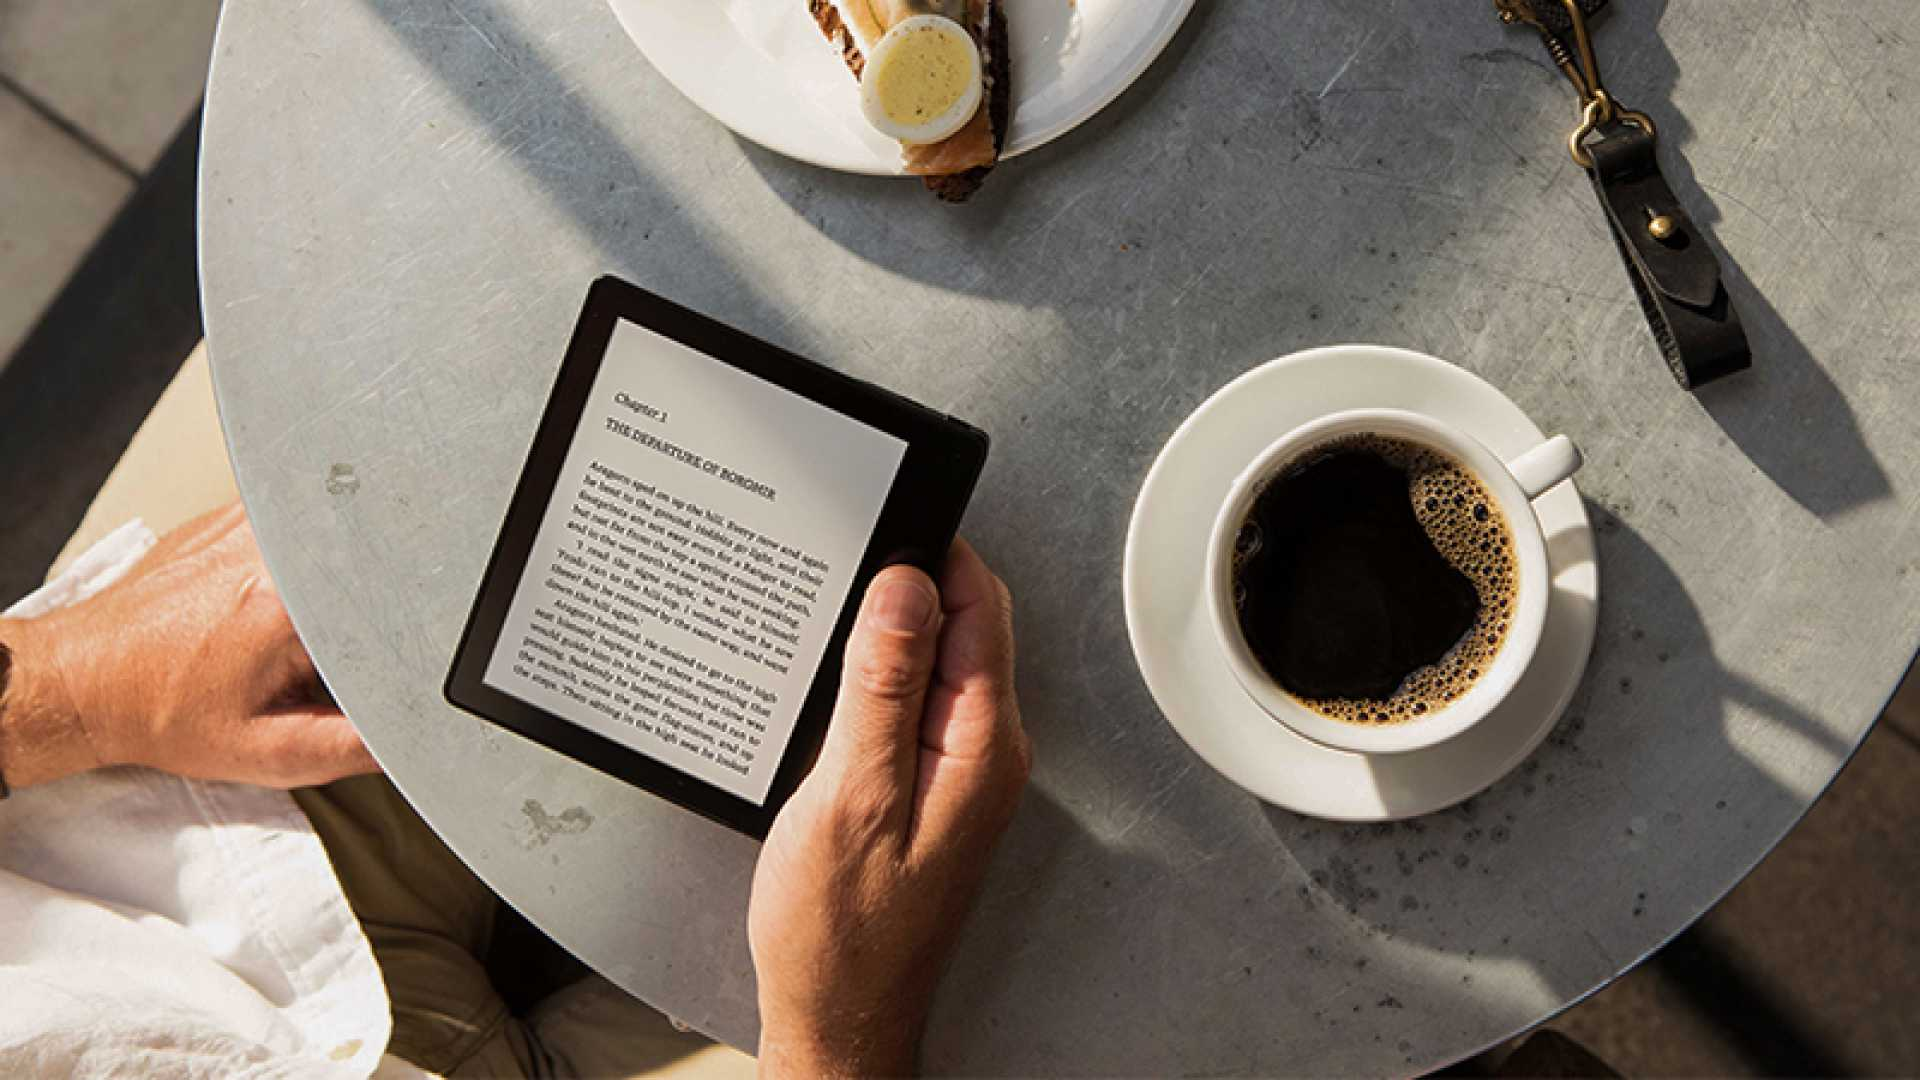 The Kindle Oasis is a great e-book reader for people who love e-readers